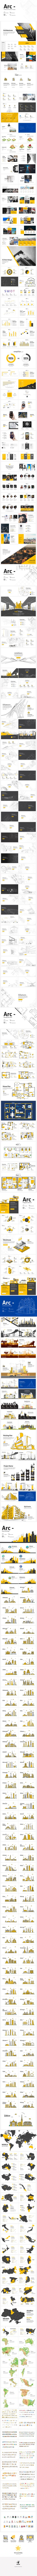 Buy Arc - Animated Presentation Template by afomindia on GraphicRiver. What's Included Architectural Blue Prints. Presentation Slides, Presentation Design, Presentation Templates, Best Powerpoint Presentations, Pptx Templates, Change Picture, Slide Design, Cool Animations